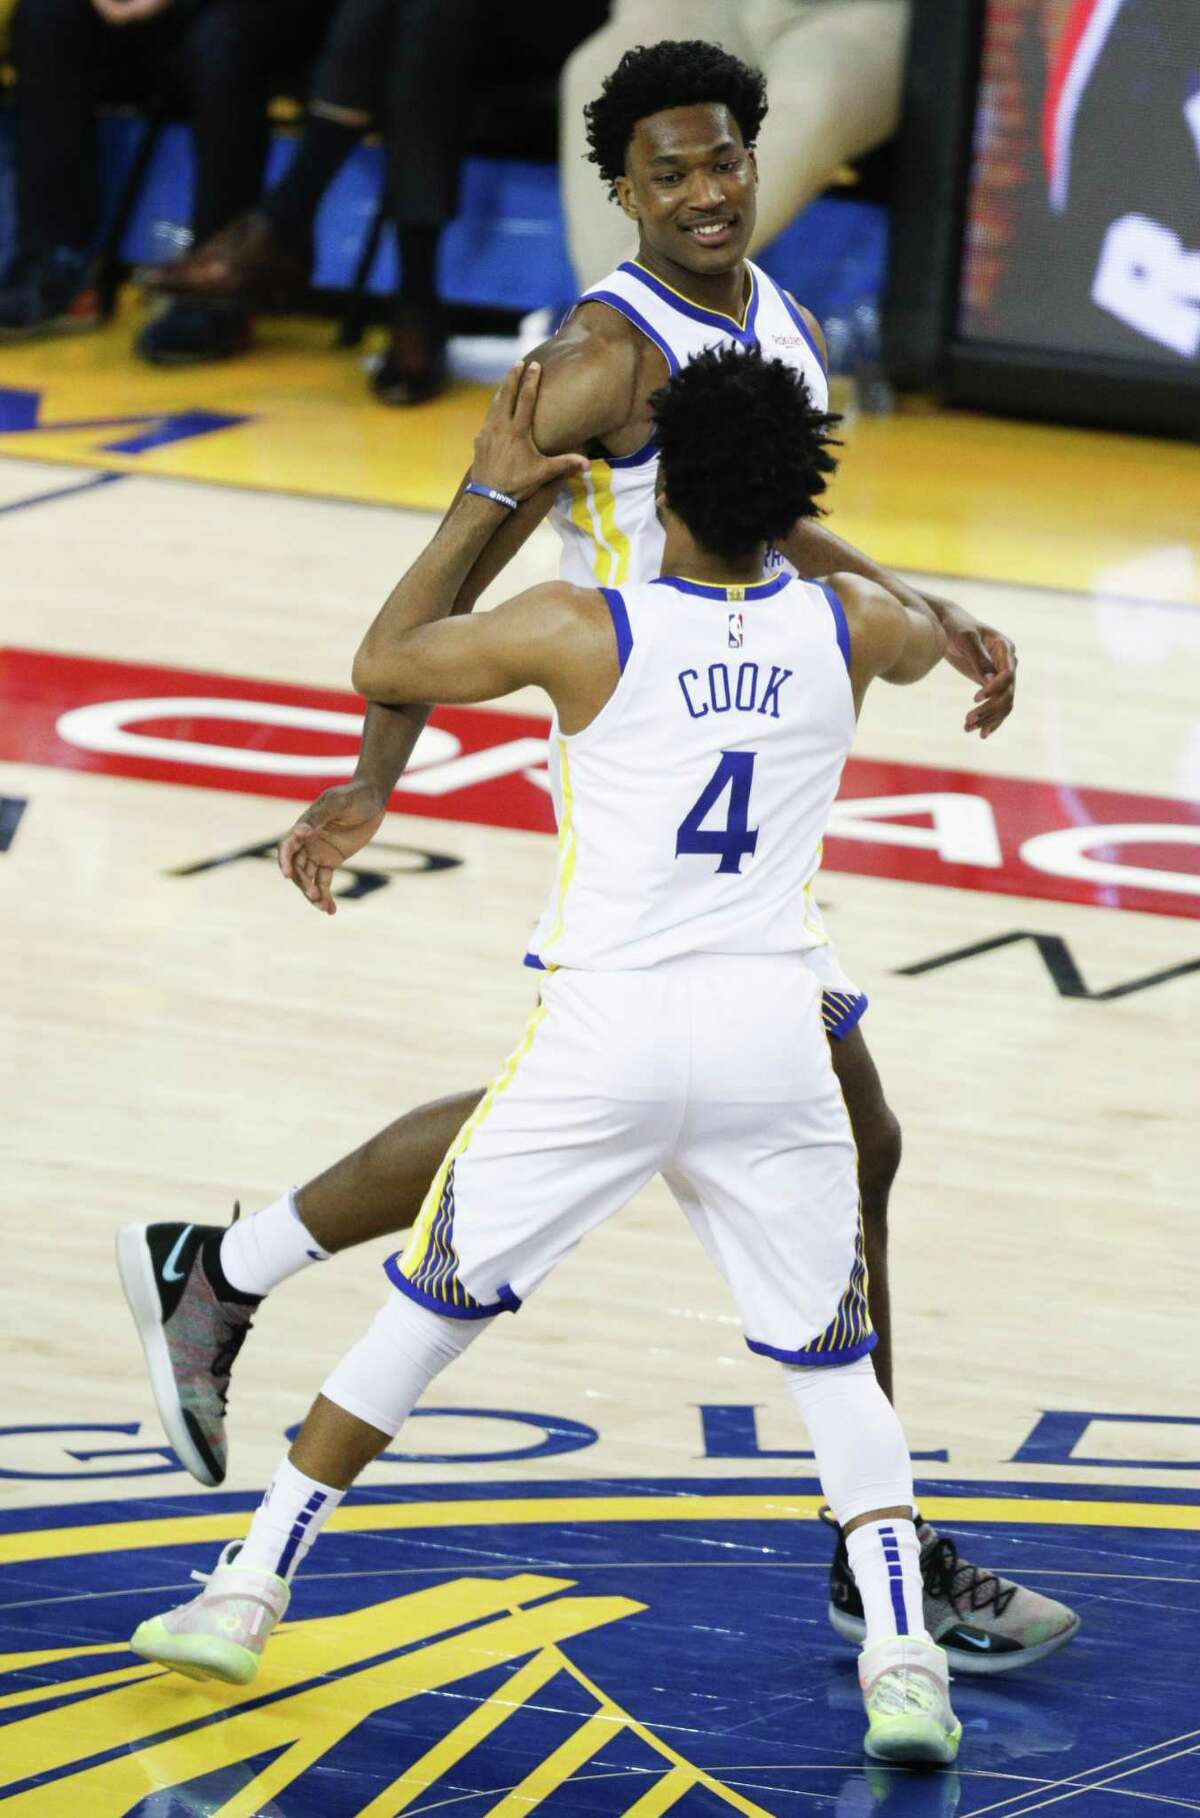 Golden State Warriors Quinn Cook and Damian Jones react to Jones' score in the fourth quarter during game 1 of the Western Conference Finals between the Golden State Warriors and the Portland Trail Blazers at Oracle Arena on Tuesday, May 14, 2019 in Oakland, Calif.